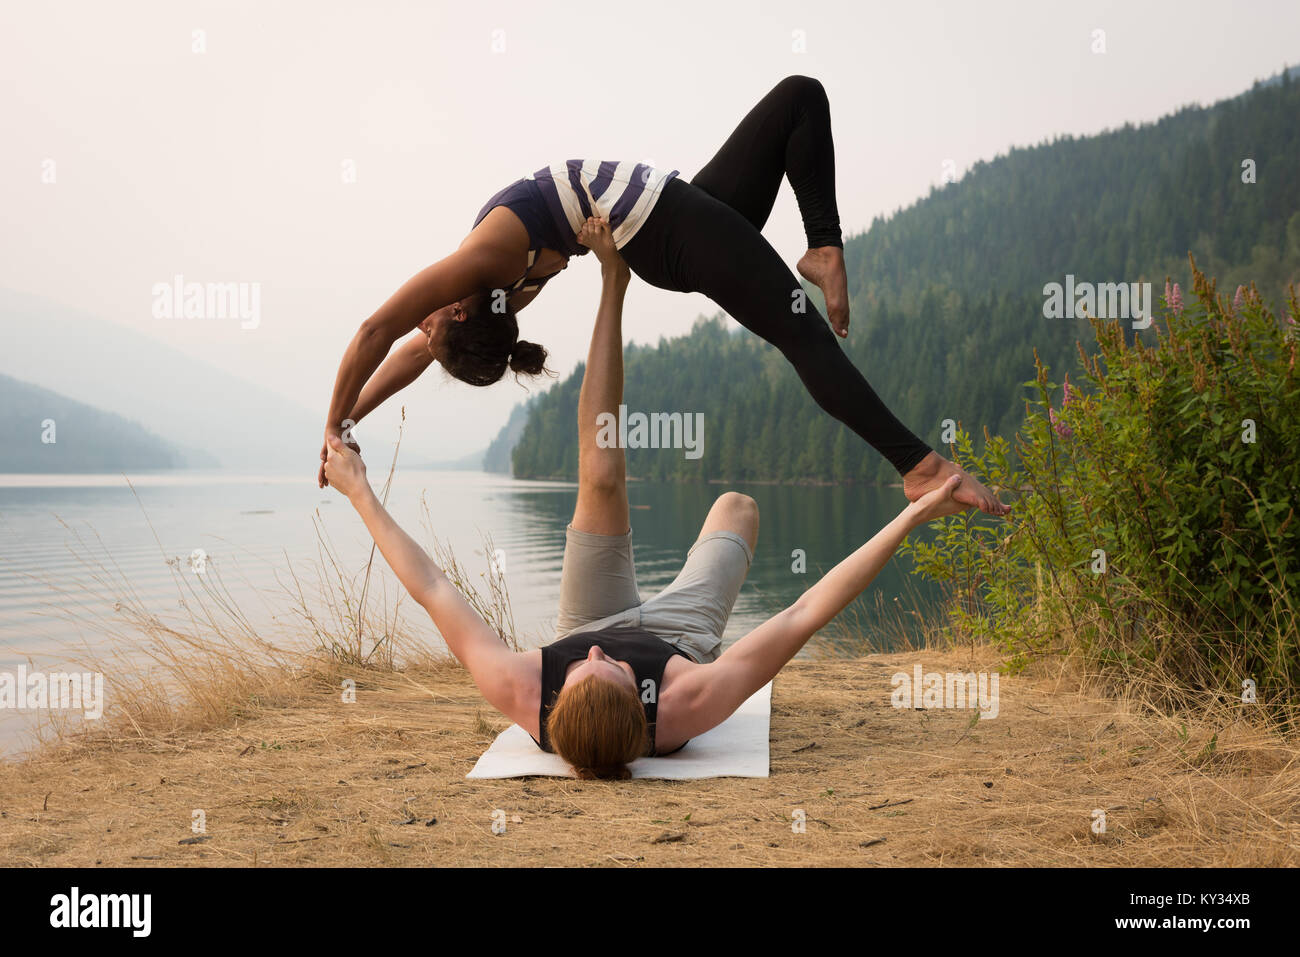 Monter couple practicing yoga acro dans un terrain verdoyant Photo Stock